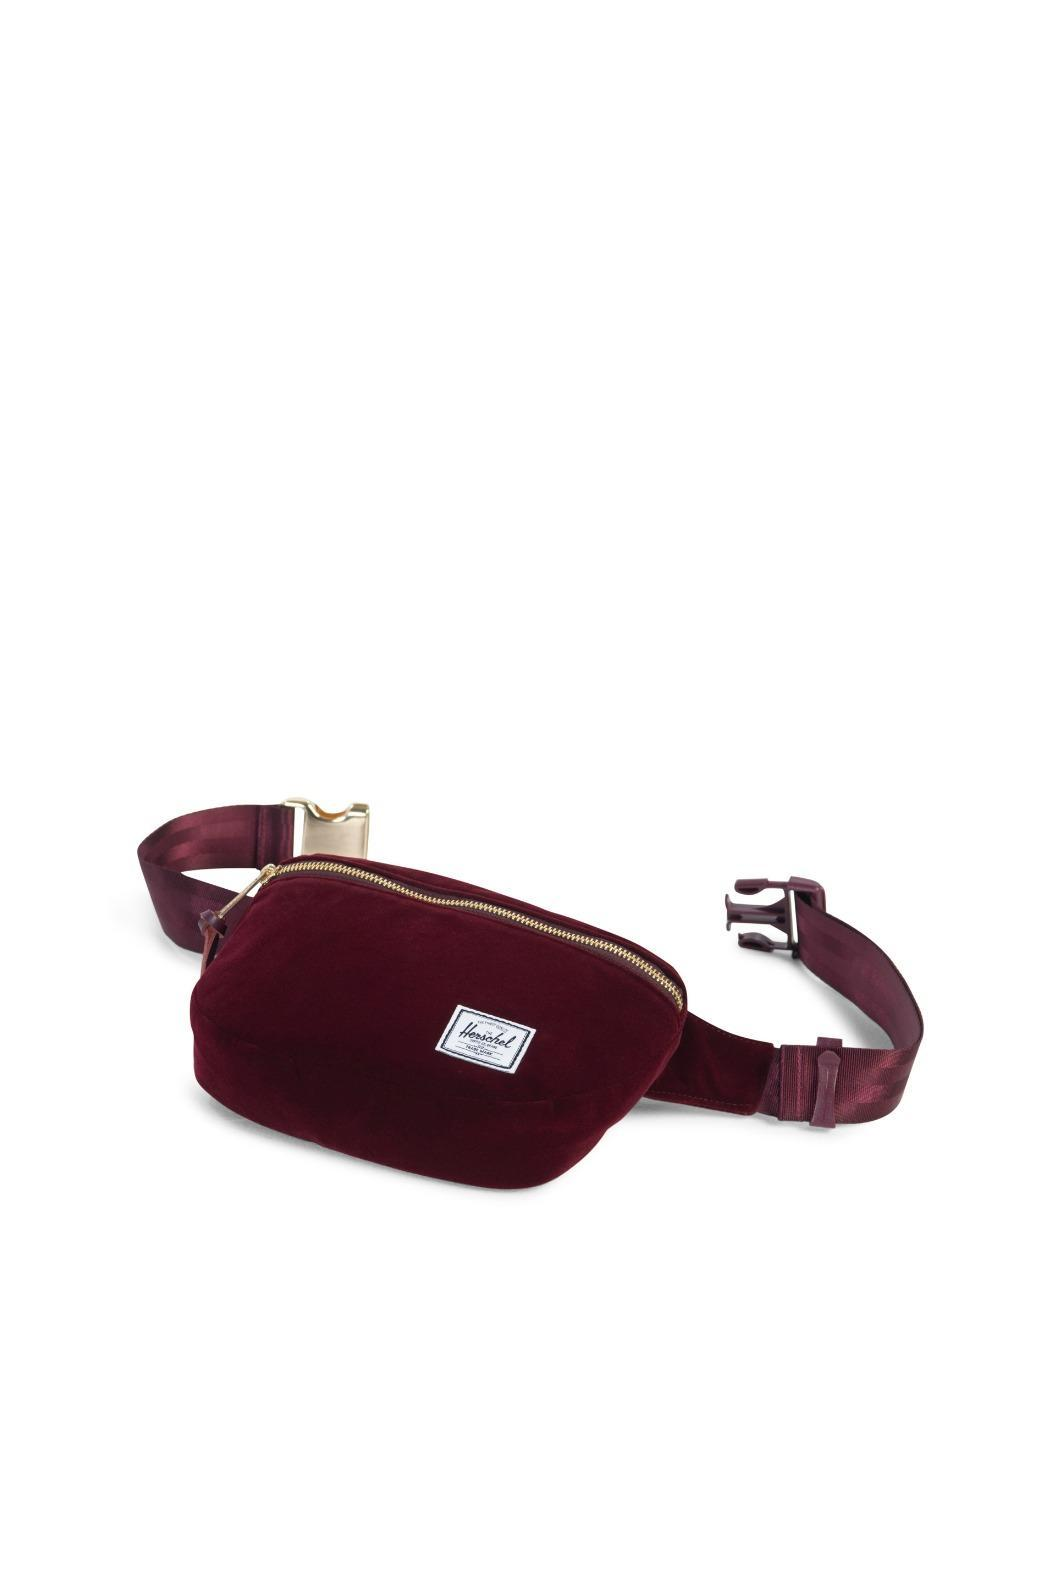 73627d41486 Herschel Supply Co. Velvet Fanny Pack from New Jersey by Making ...